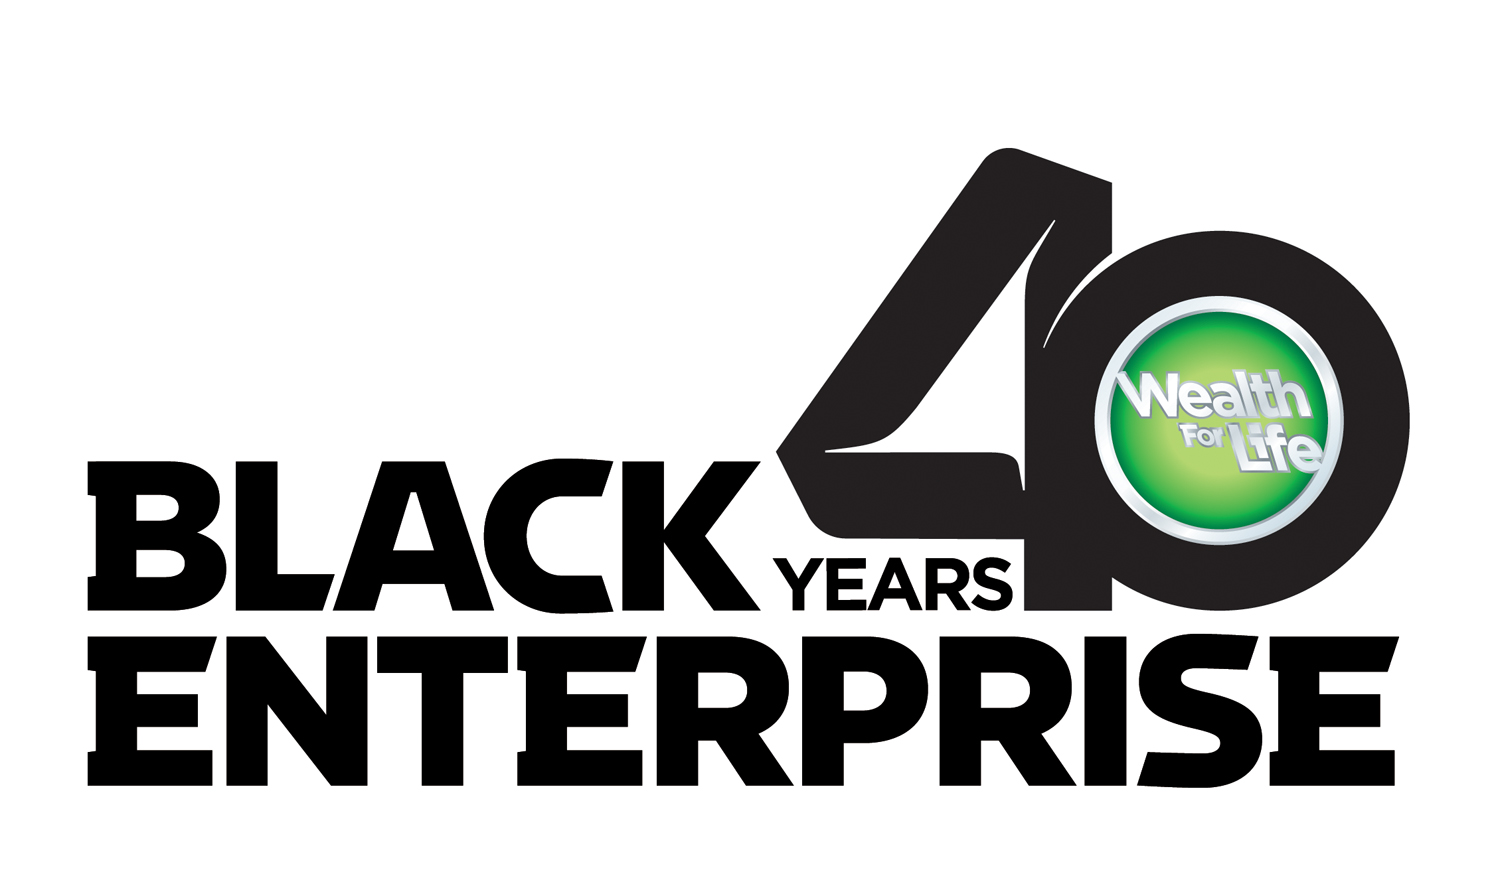 How To Get Into Black Enterprise: Pitch The Right Editor